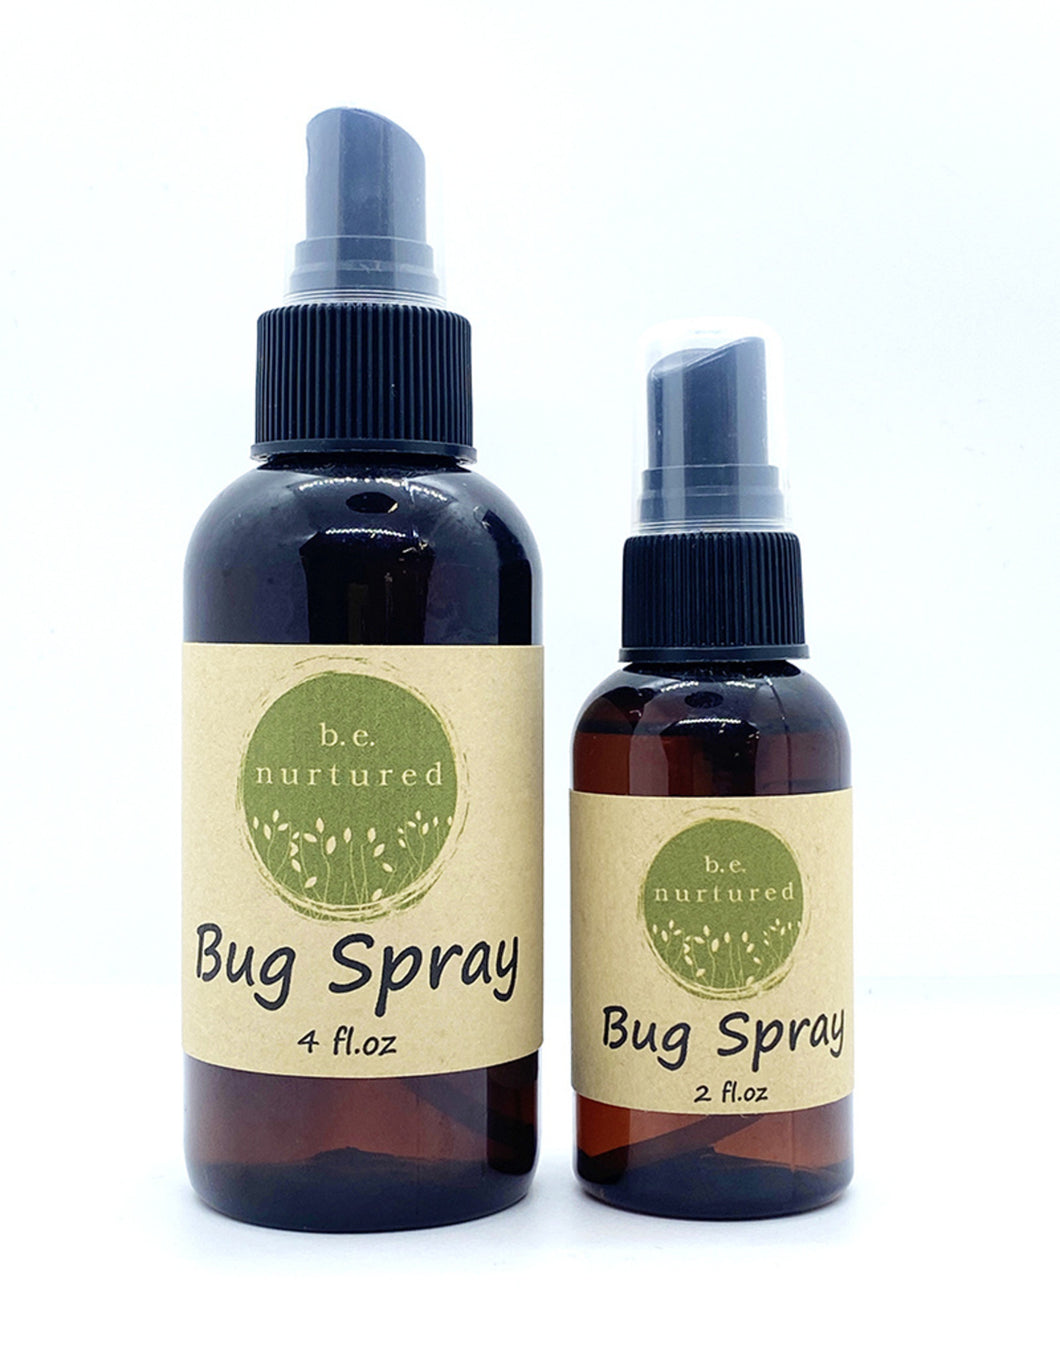 ~bug spray~